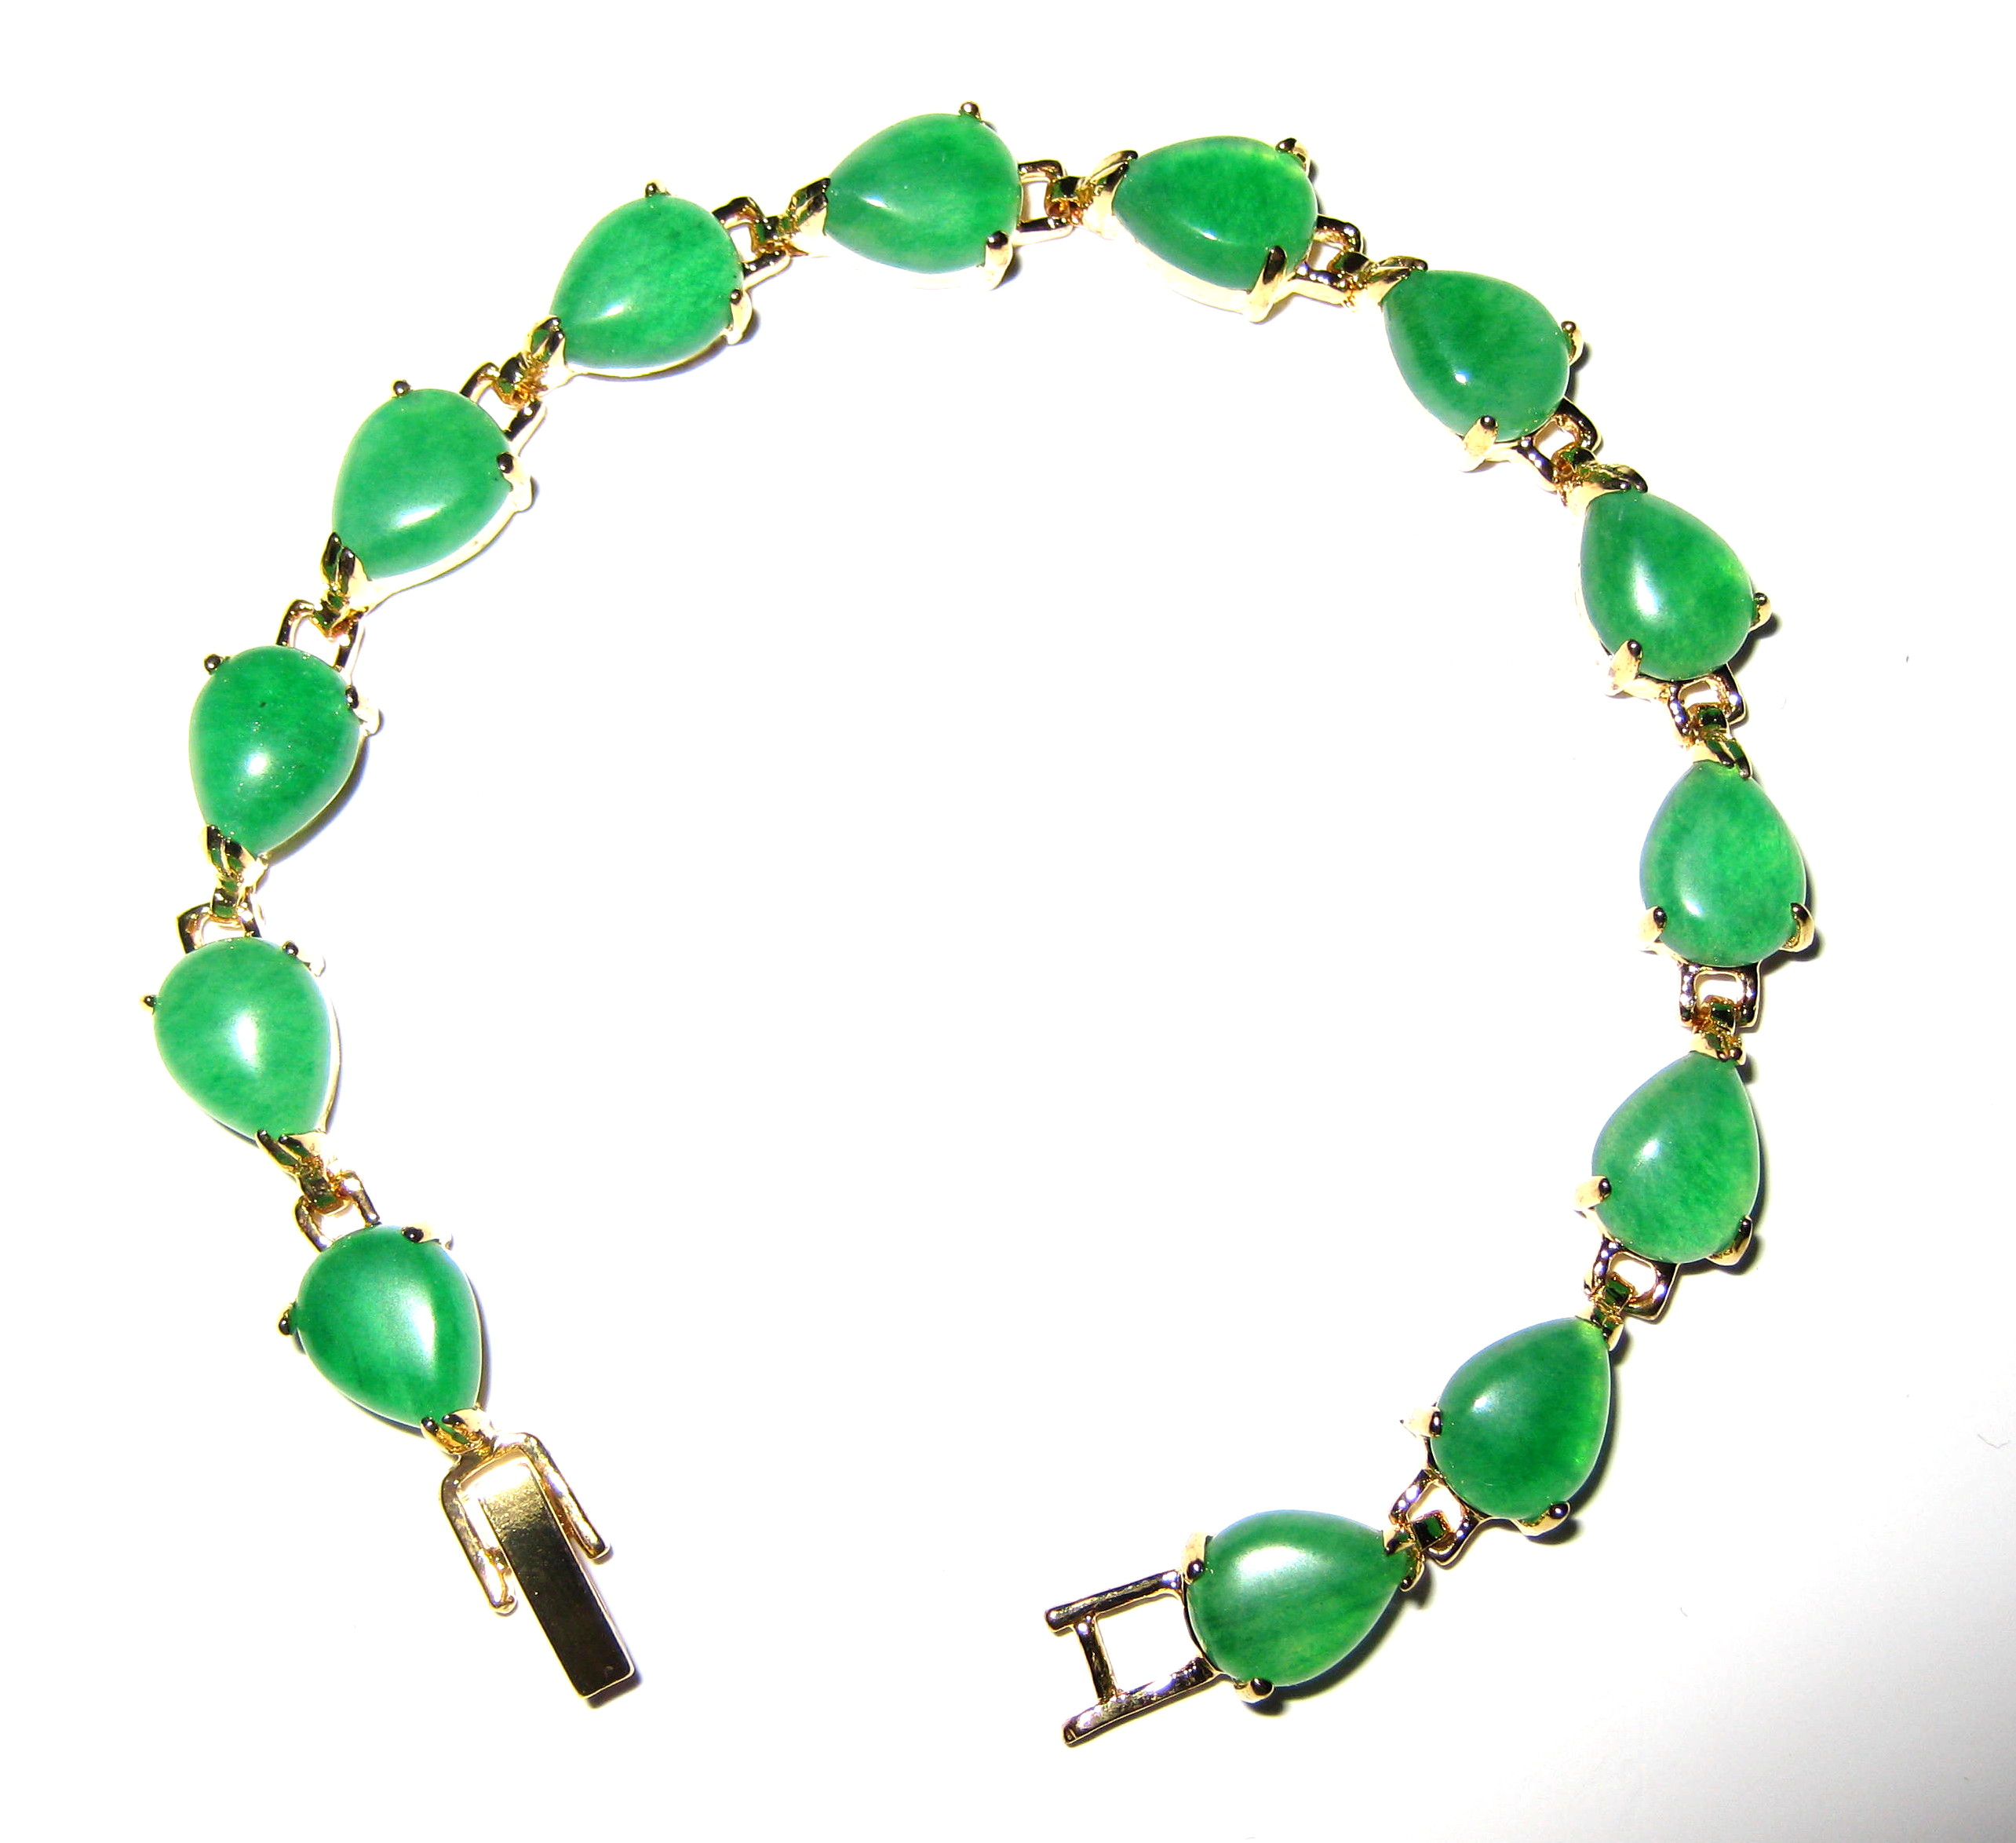 Yellow Gold Plated Green Malay Jade Heart Shaped Tennis Bracelet  - br-jd7